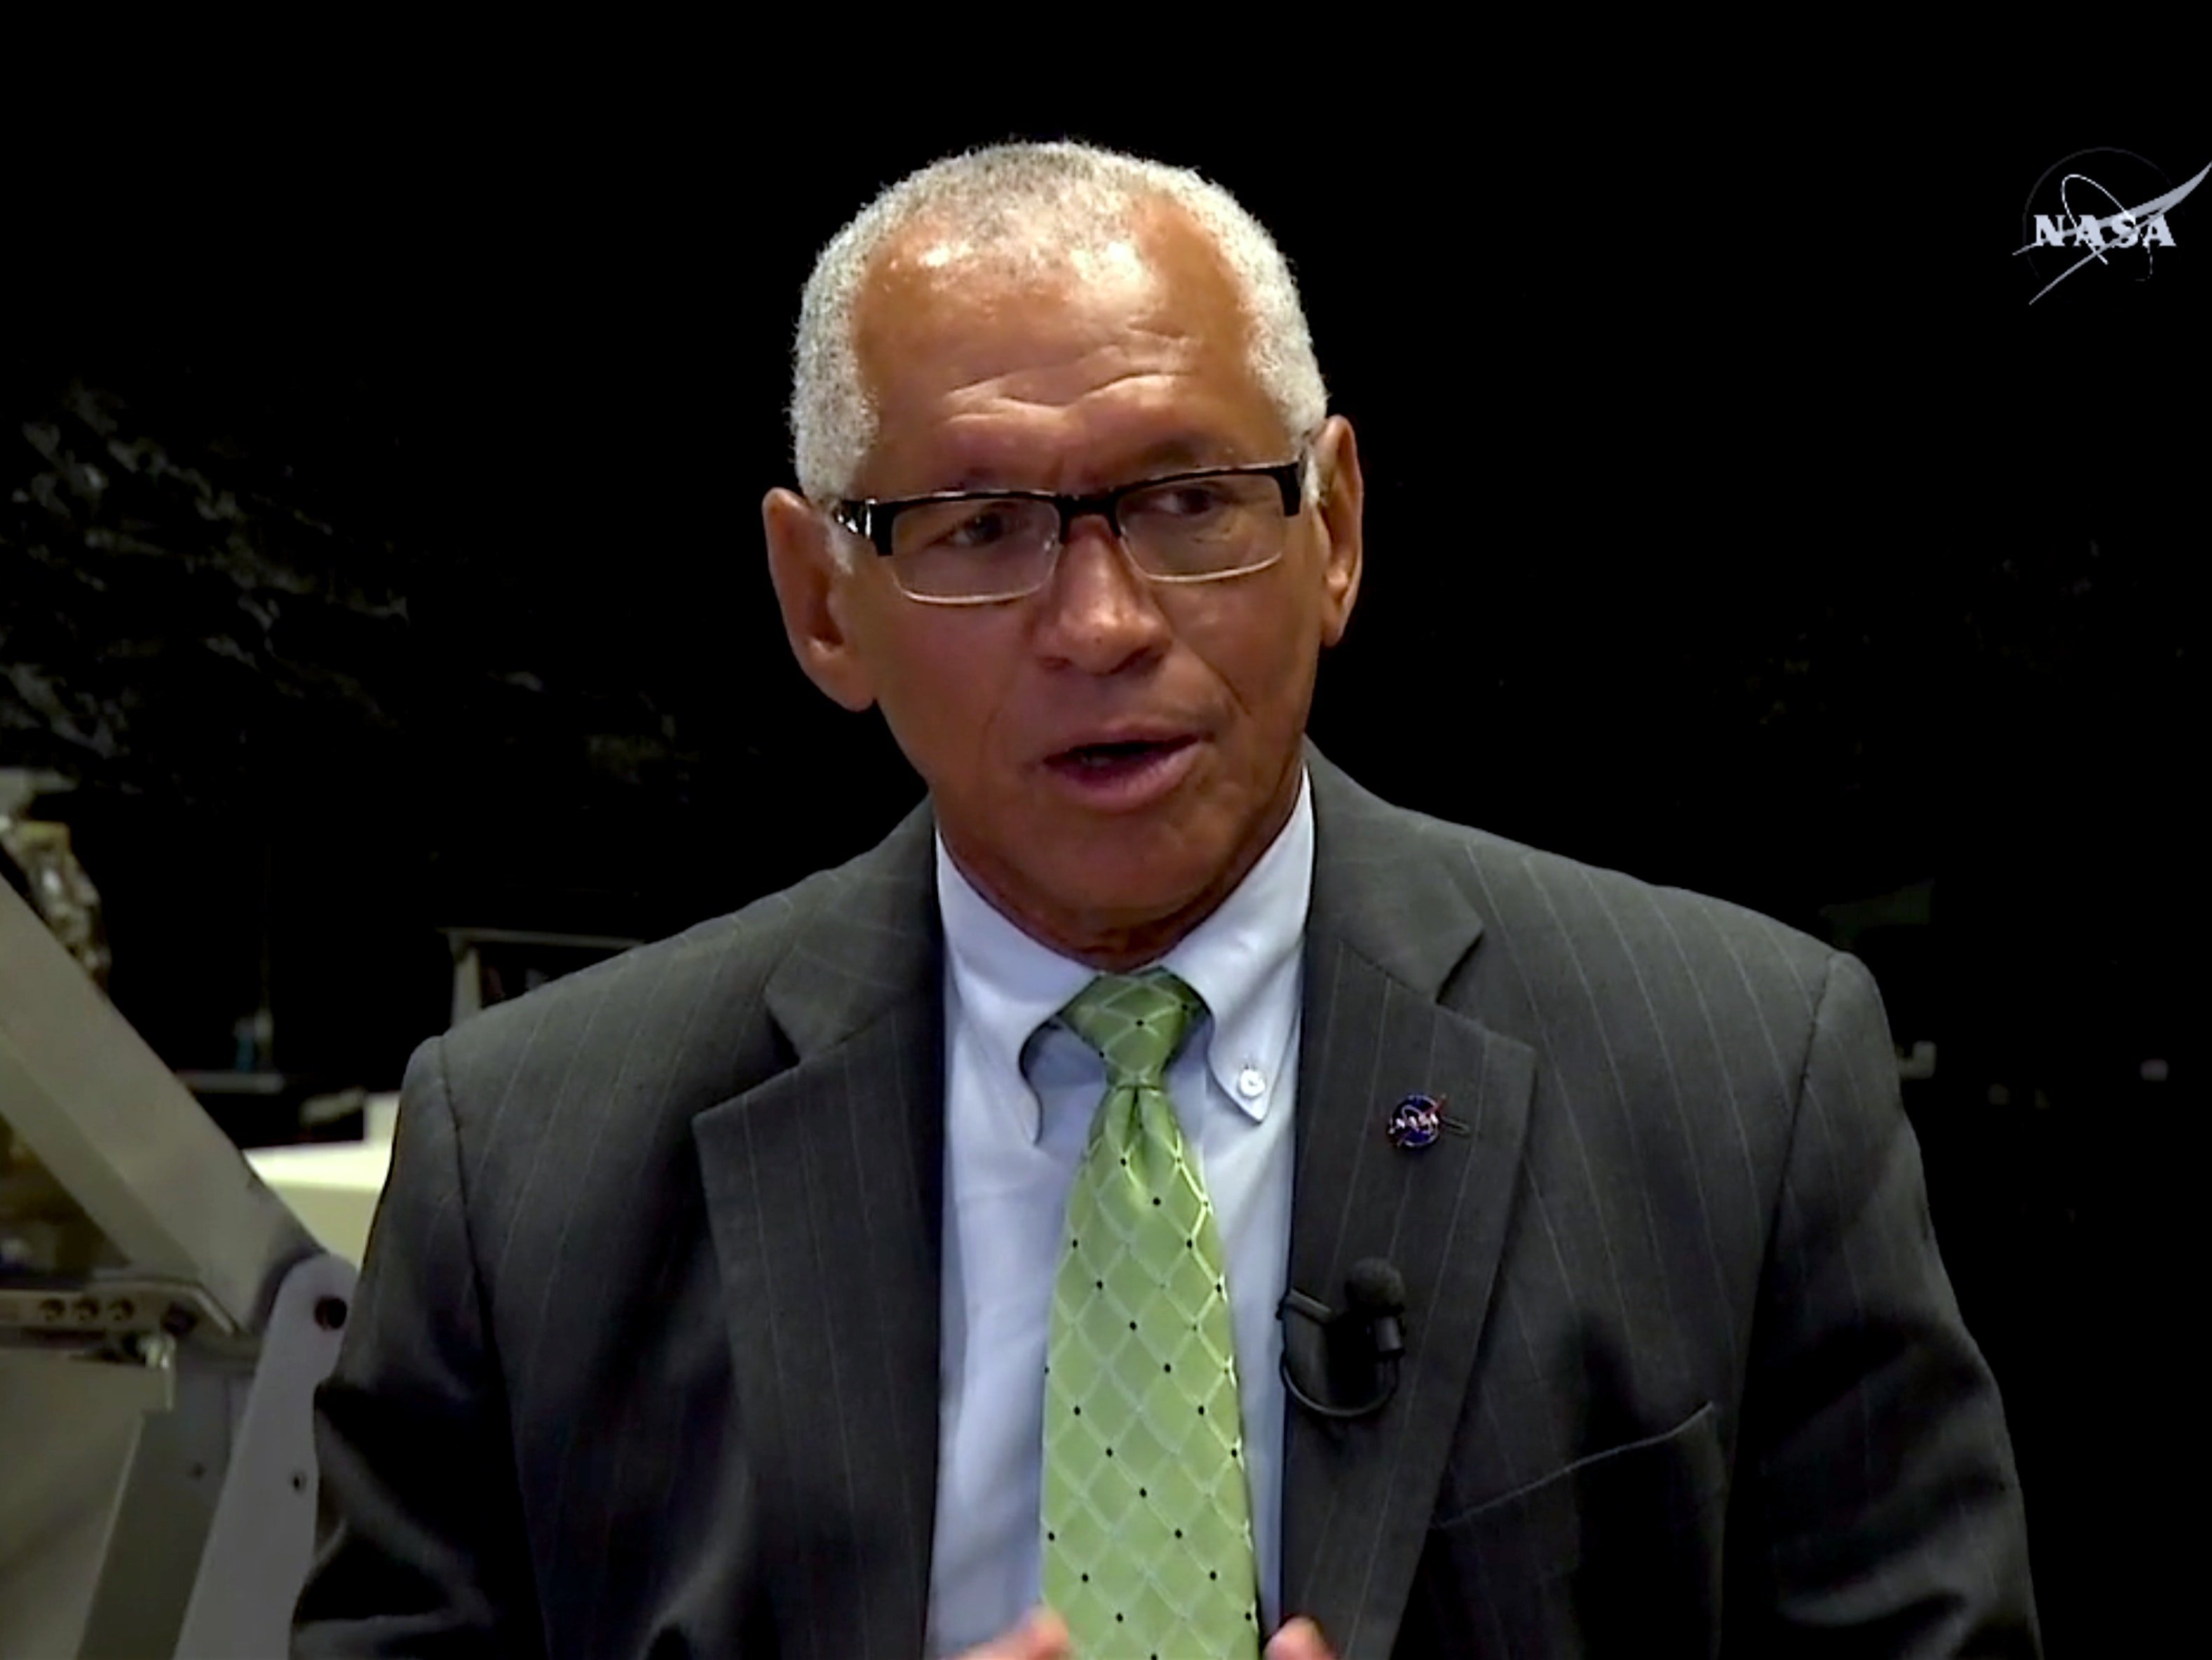 NASA Administrator Charles Bolden, speaking on Wednesday.